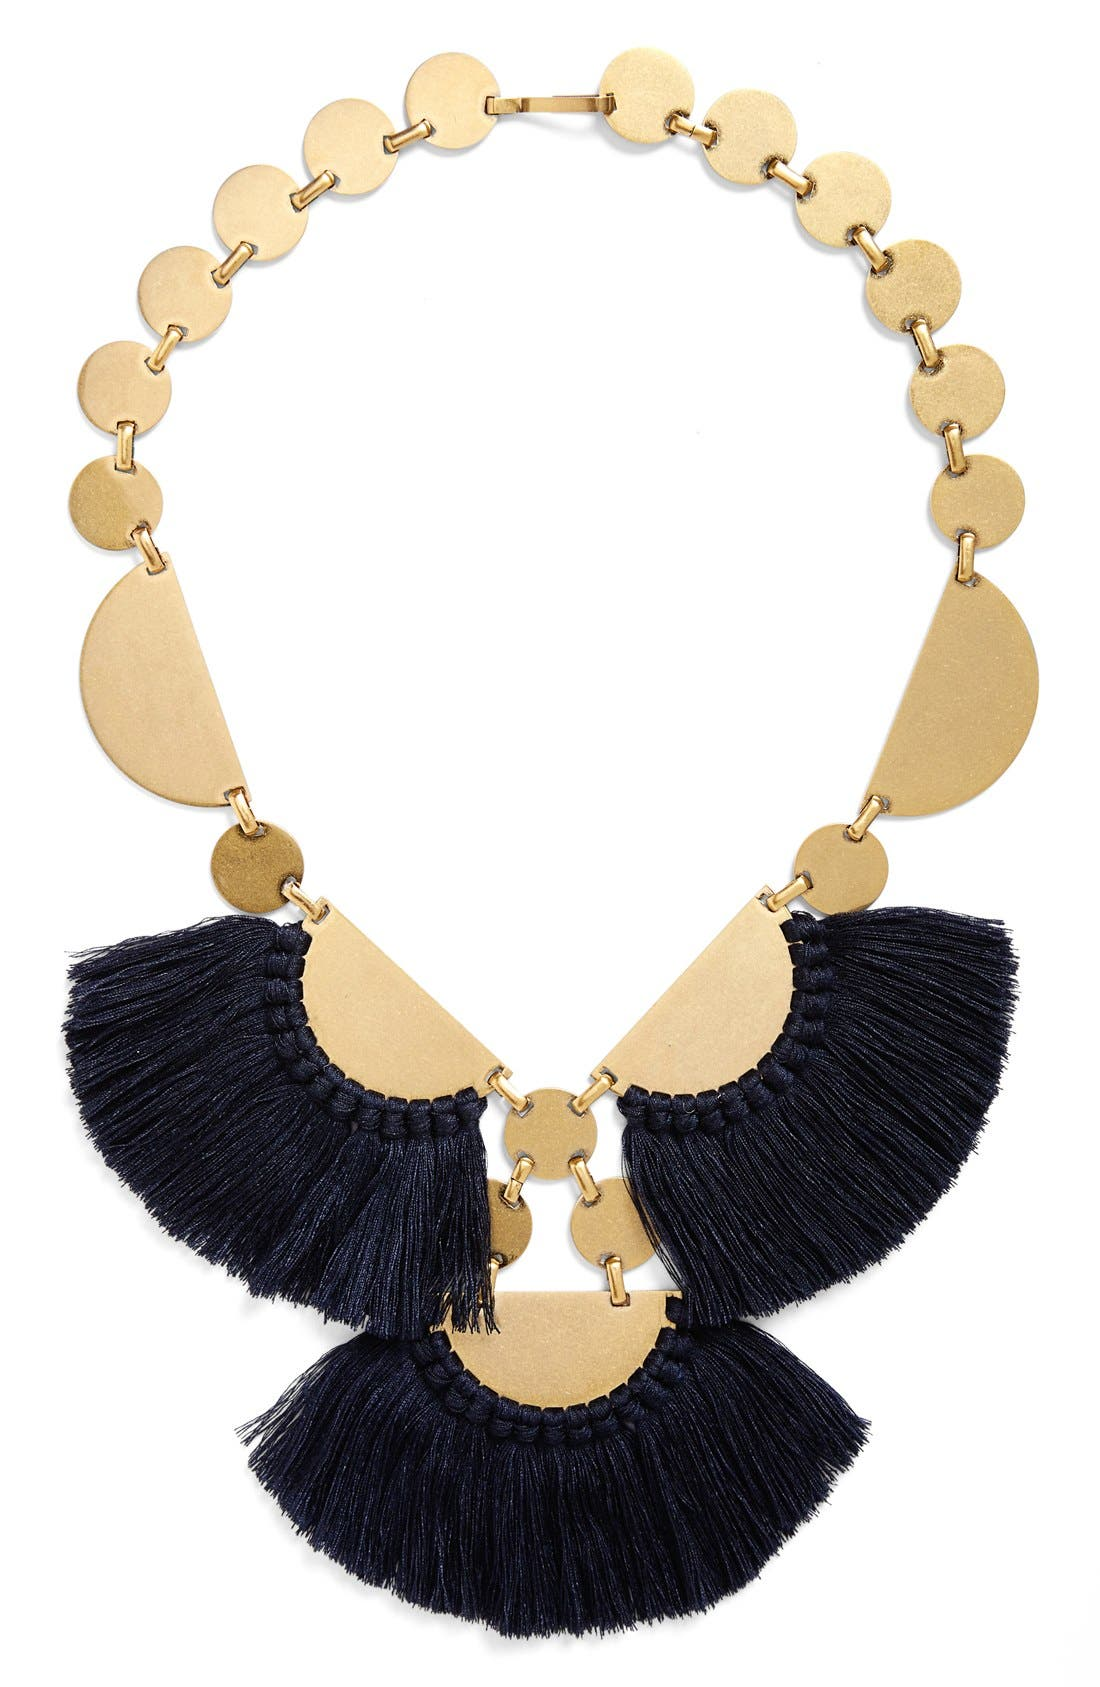 Main Image - Tory Burch 'Fringe Disc' Statement Necklace